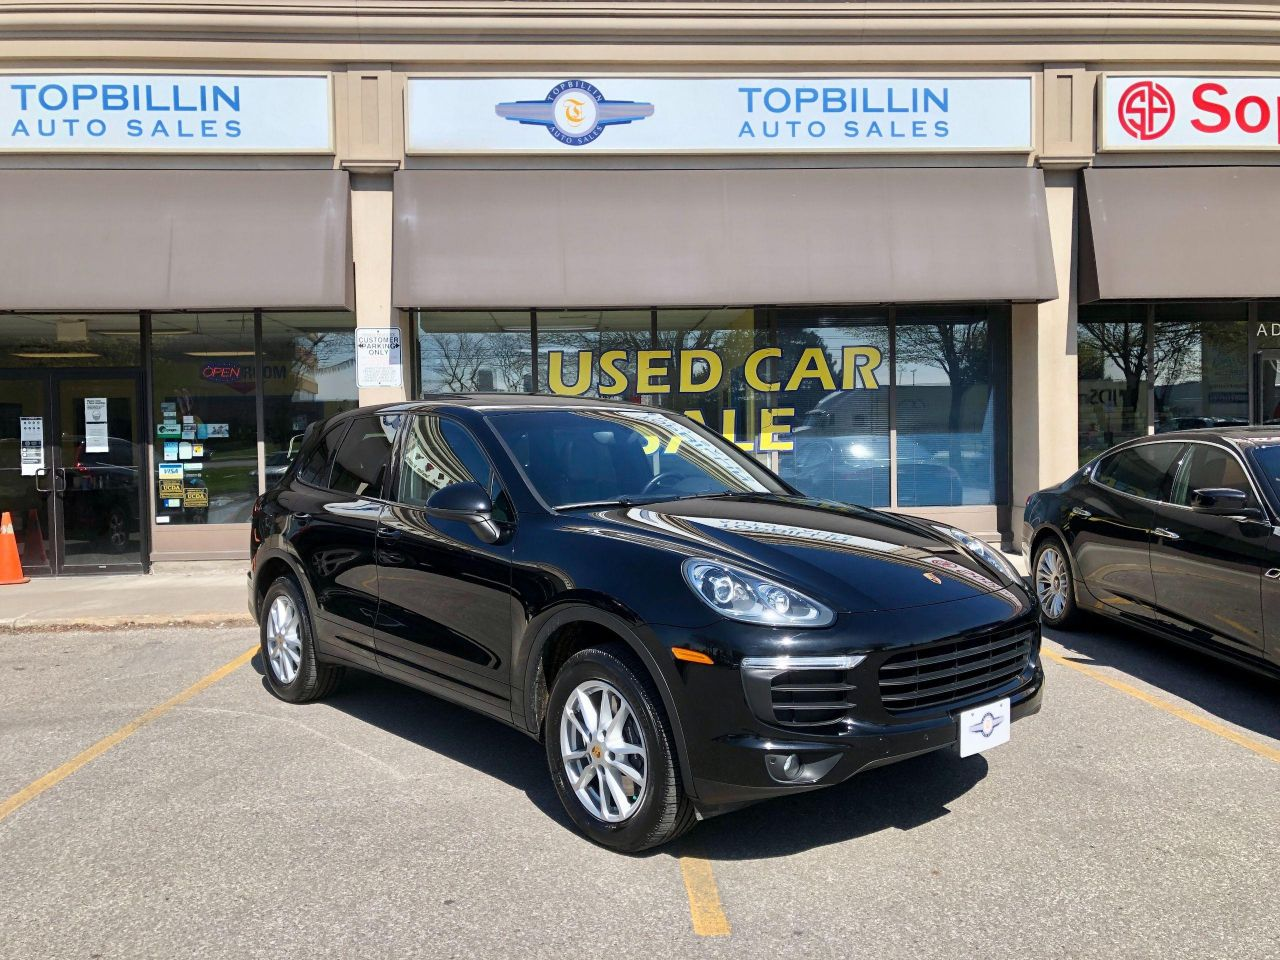 2017 Porsche Cayenne Clean CarFax, Leather, Pano Roof, Navigation